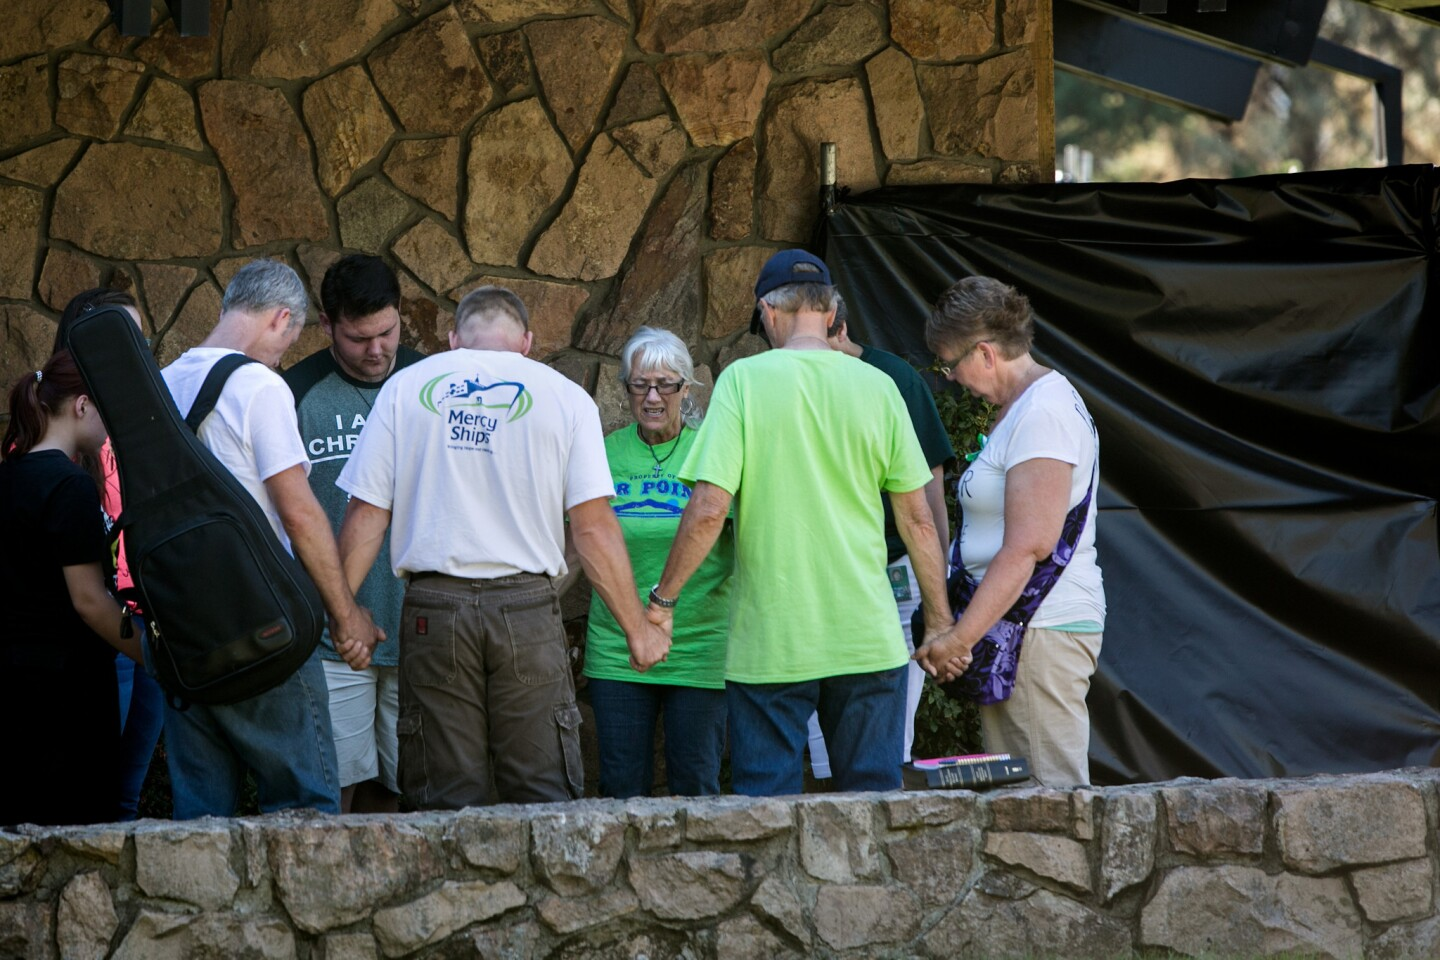 A prayer circle is held Oct. 5 at Snyder Hall, the site of the Umpqua Community College mass shooting.